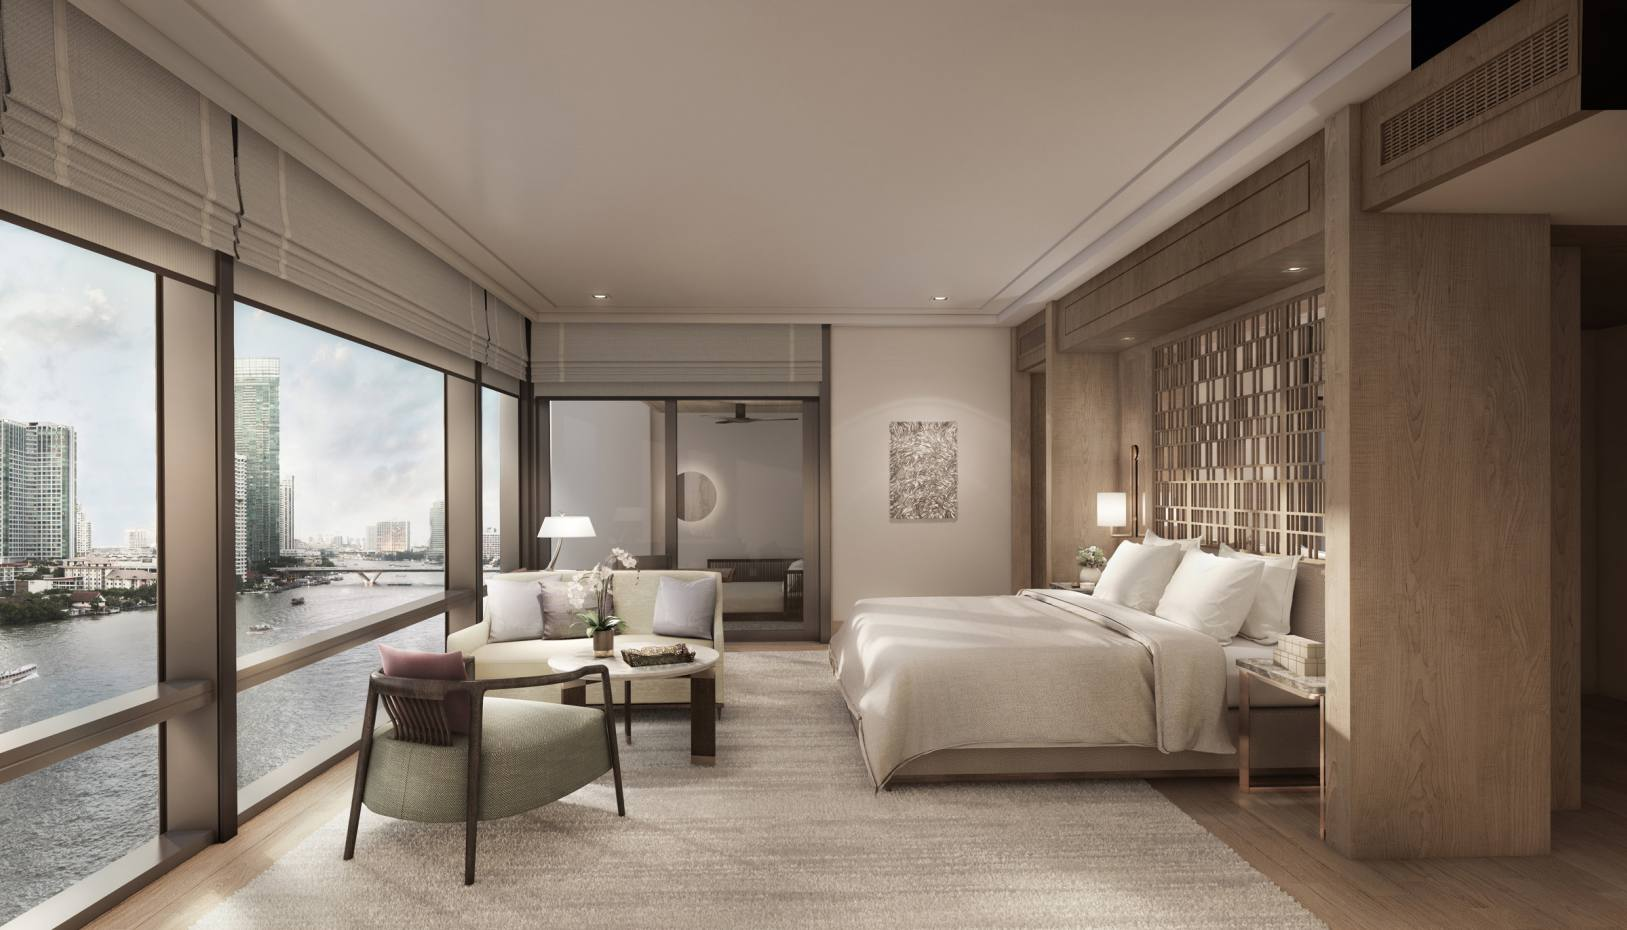 The Capella Bangkok's elegant rooms look out over the Chao Phraya river